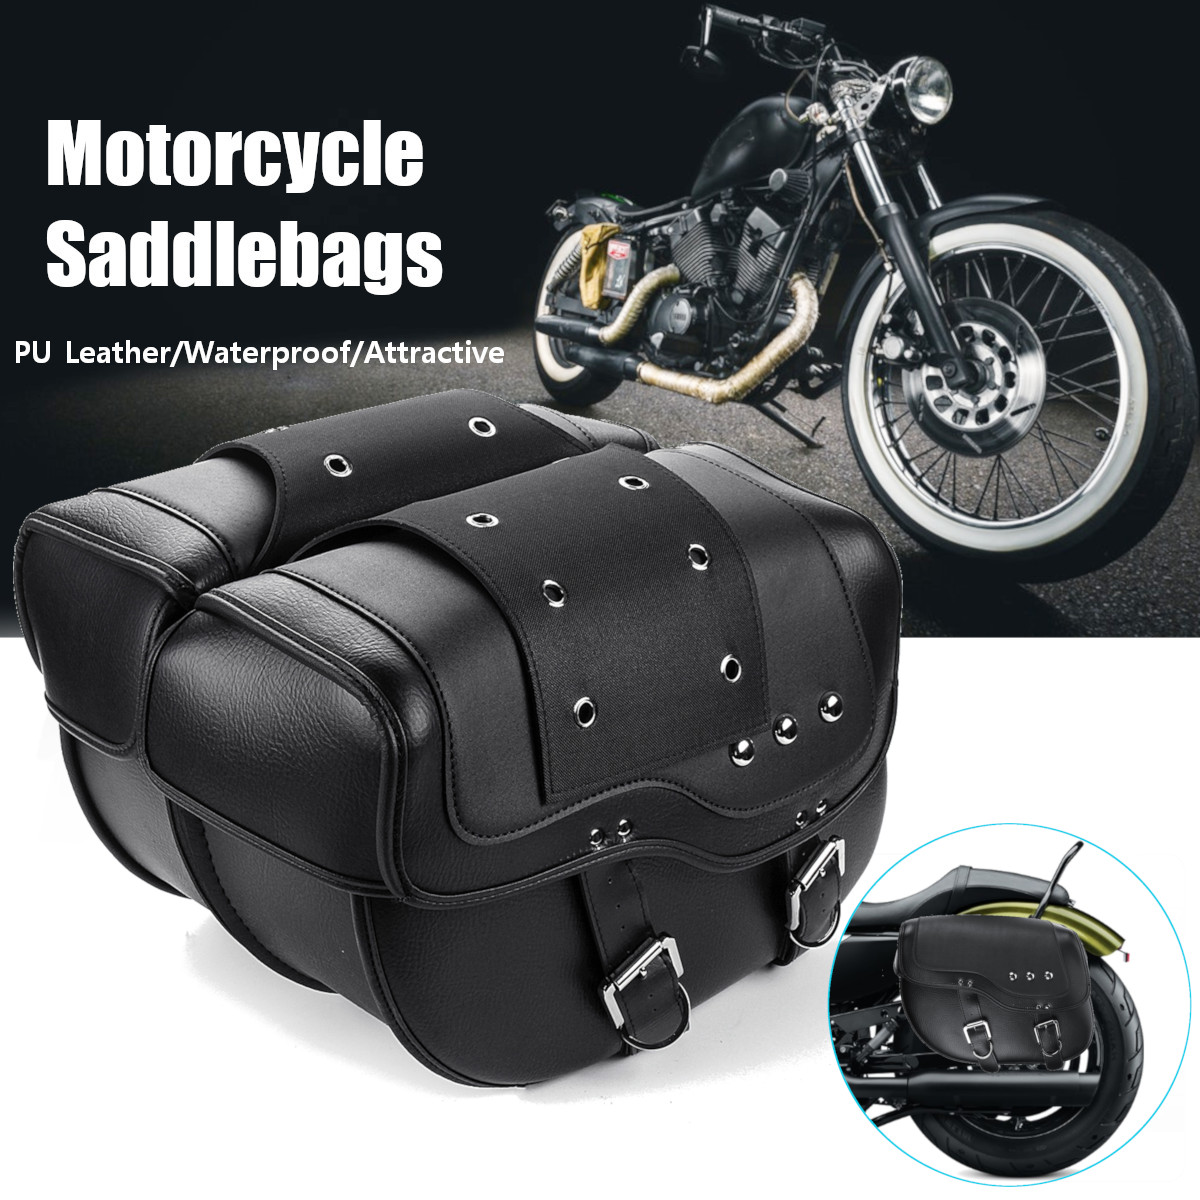 2pcs PU Leather Braided Motorcycle Saddlebag for Sportster XL883 XL1200